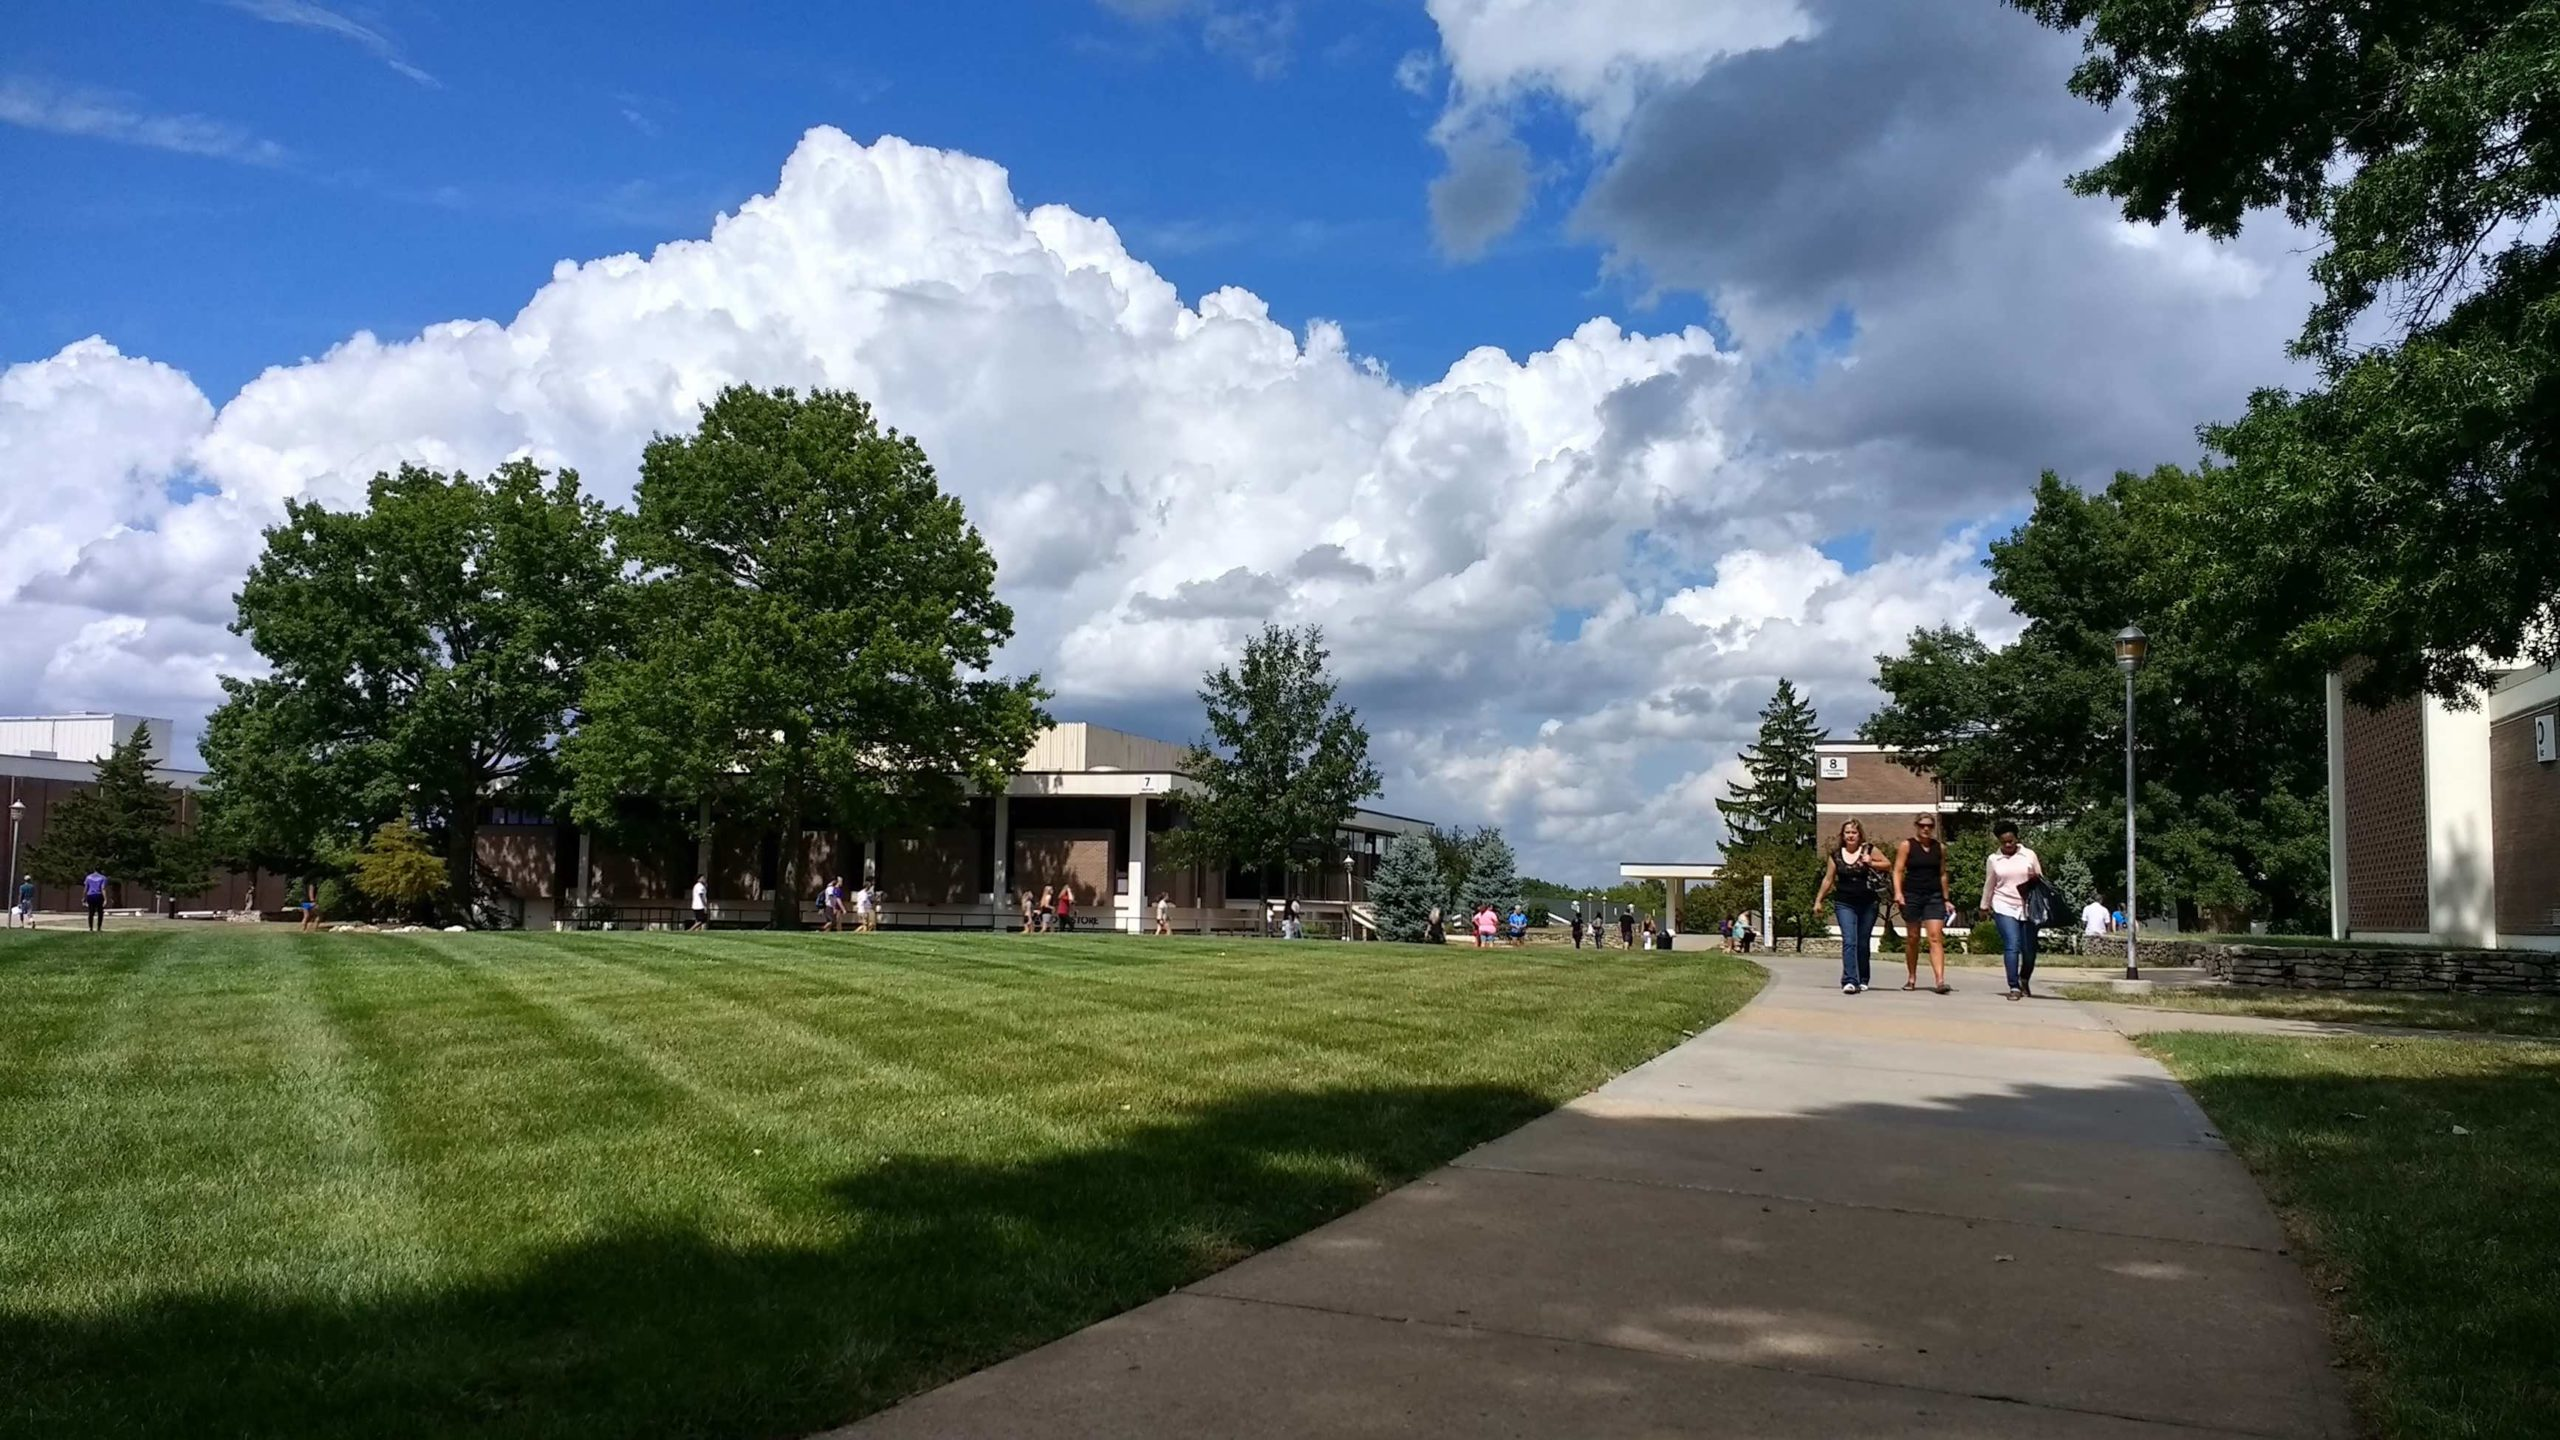 Exterior shot of the campus Quad with students walking along the sidewalks.